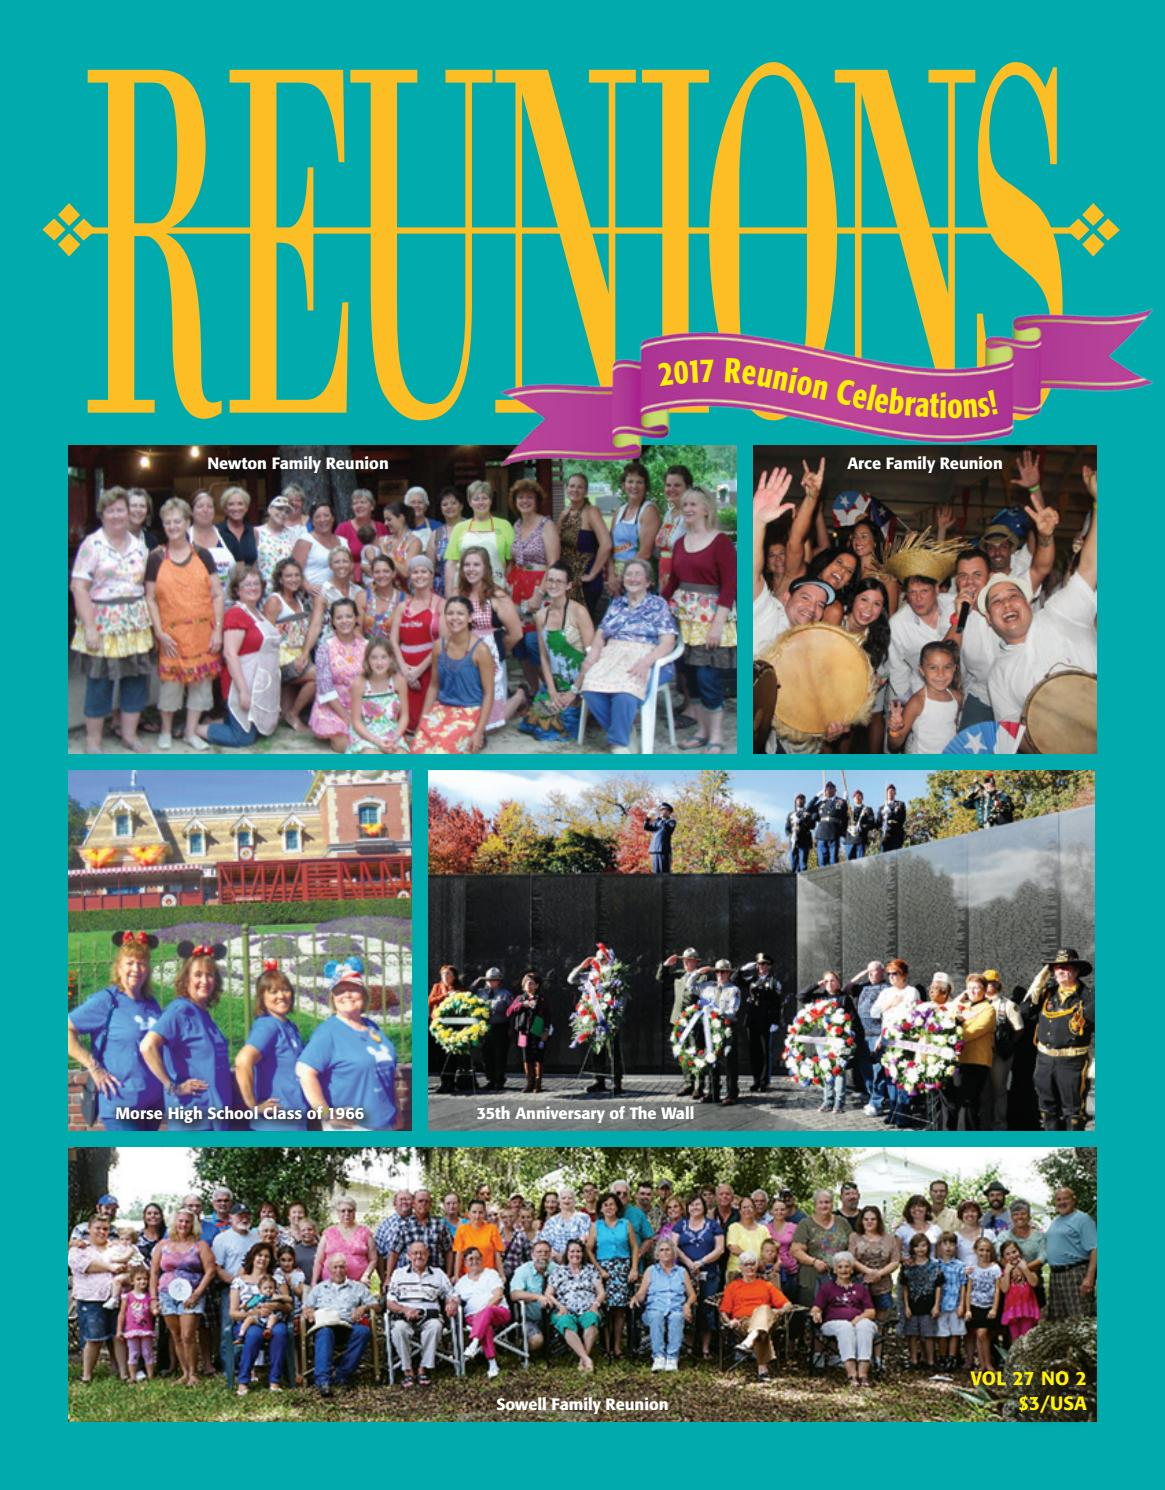 Reunions Magazine Volume 27 Number 2 September 2017 By Schematic Diagram For Bunn Coffee Maker Likewise Keurig Issuu